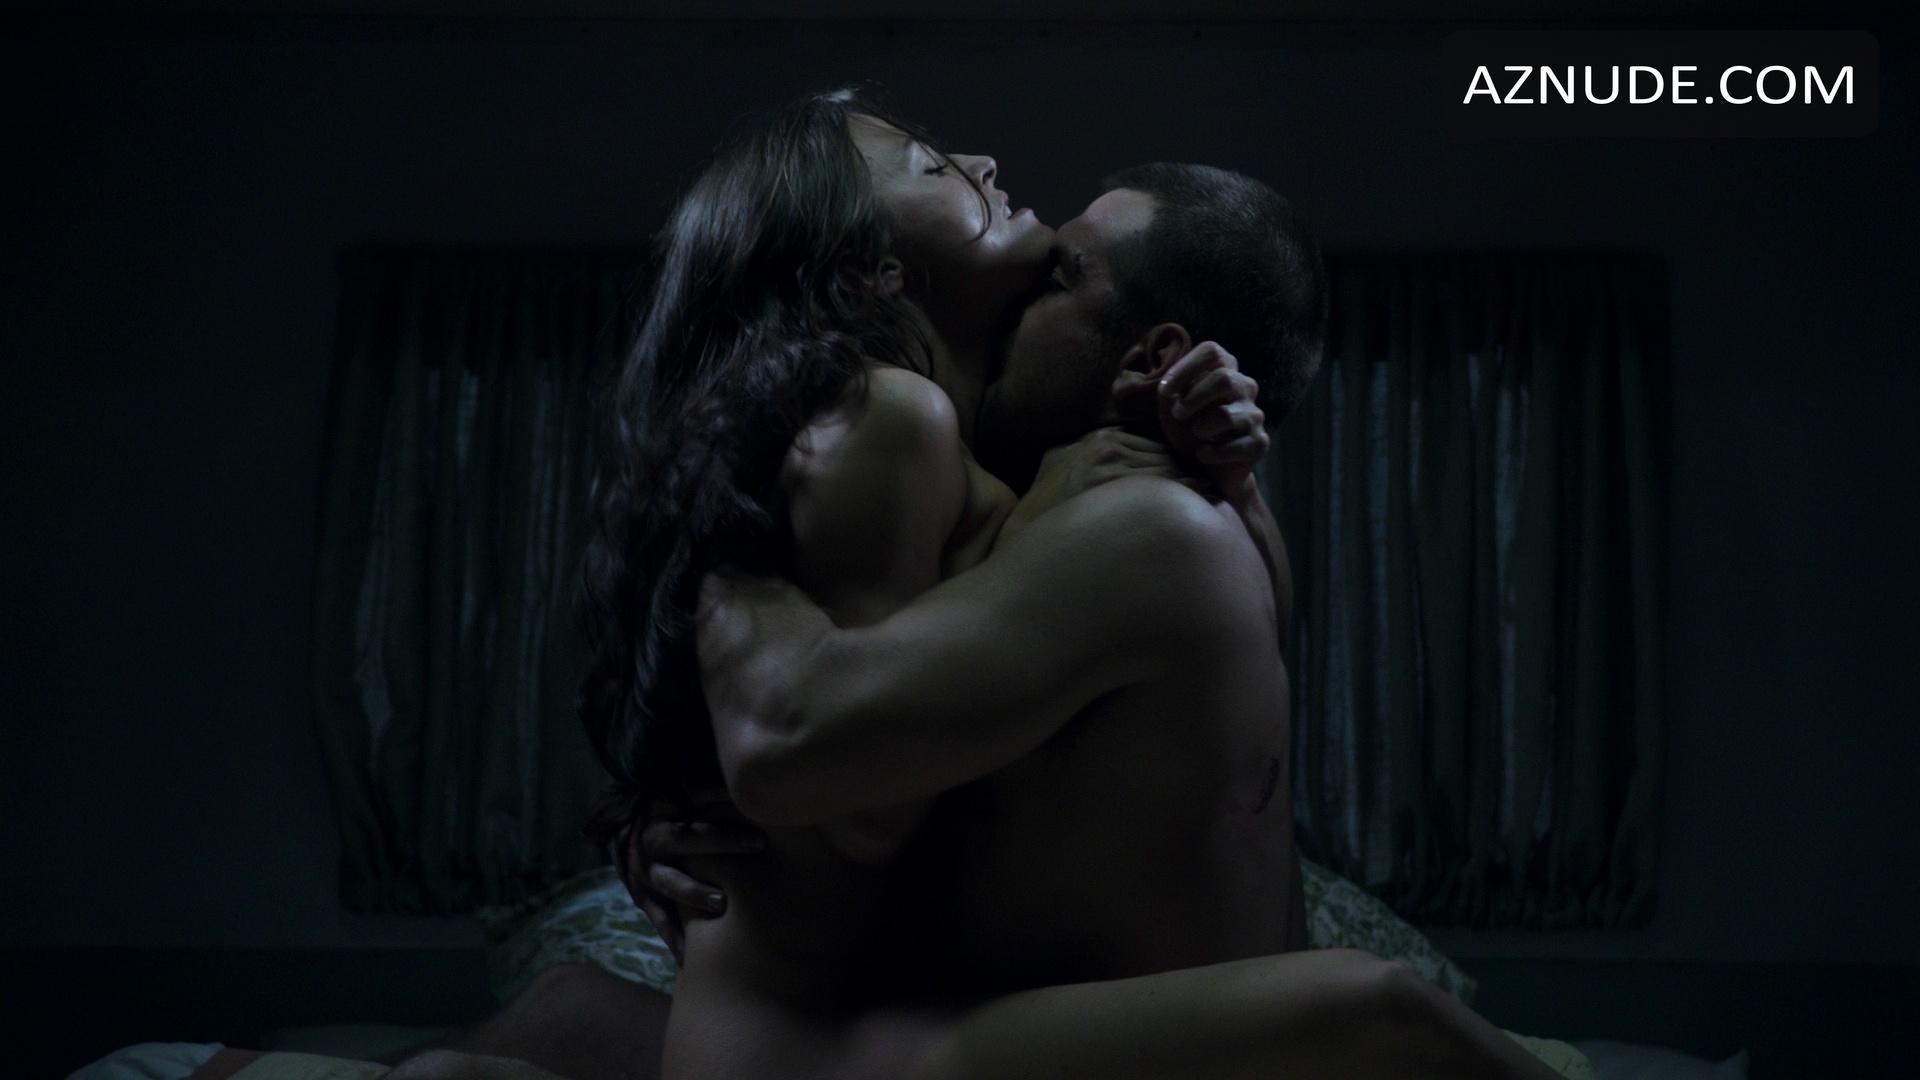 Antony starr nude understood not